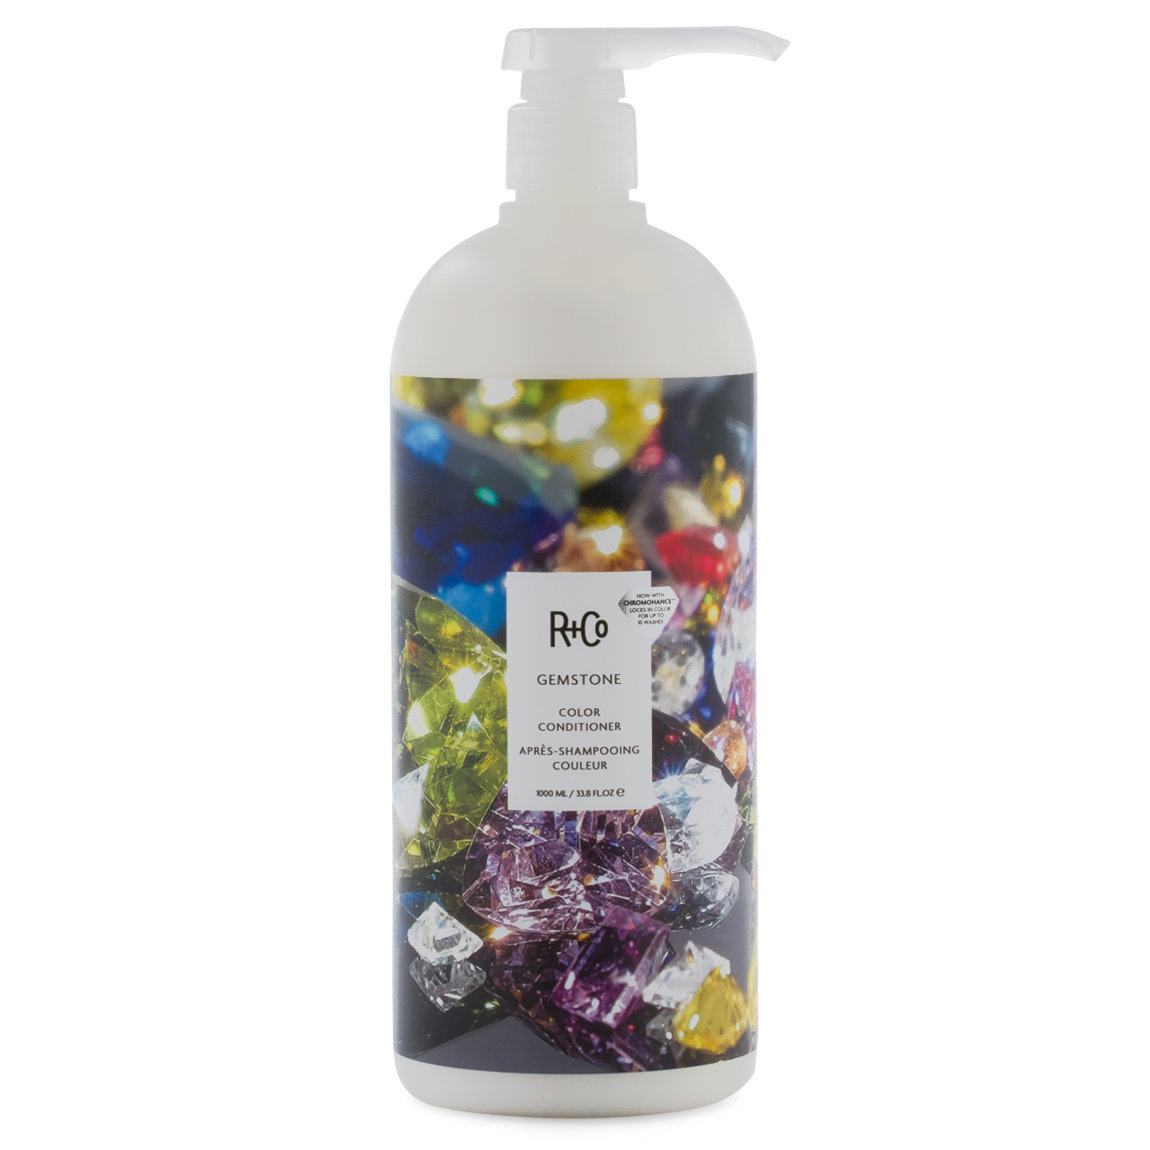 R+Co Gemstone Color Conditioner 1 L alternative view 1 - product swatch.